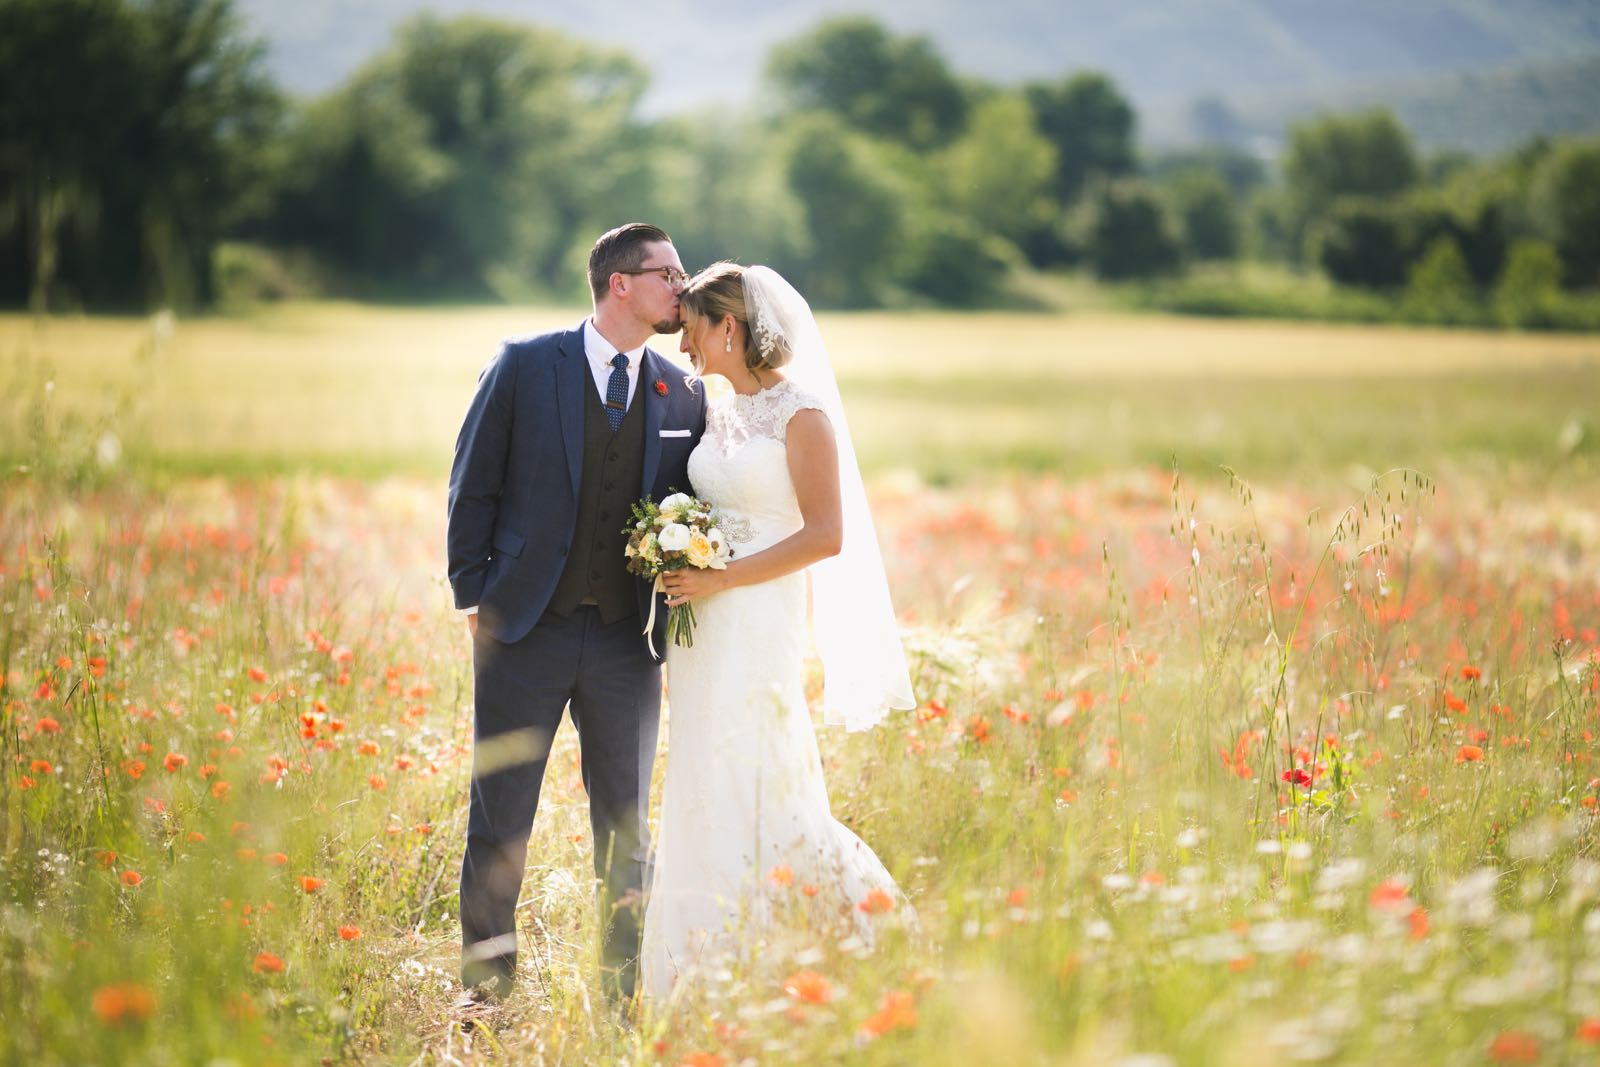 Wedding photo, wildflowers in Tuscany